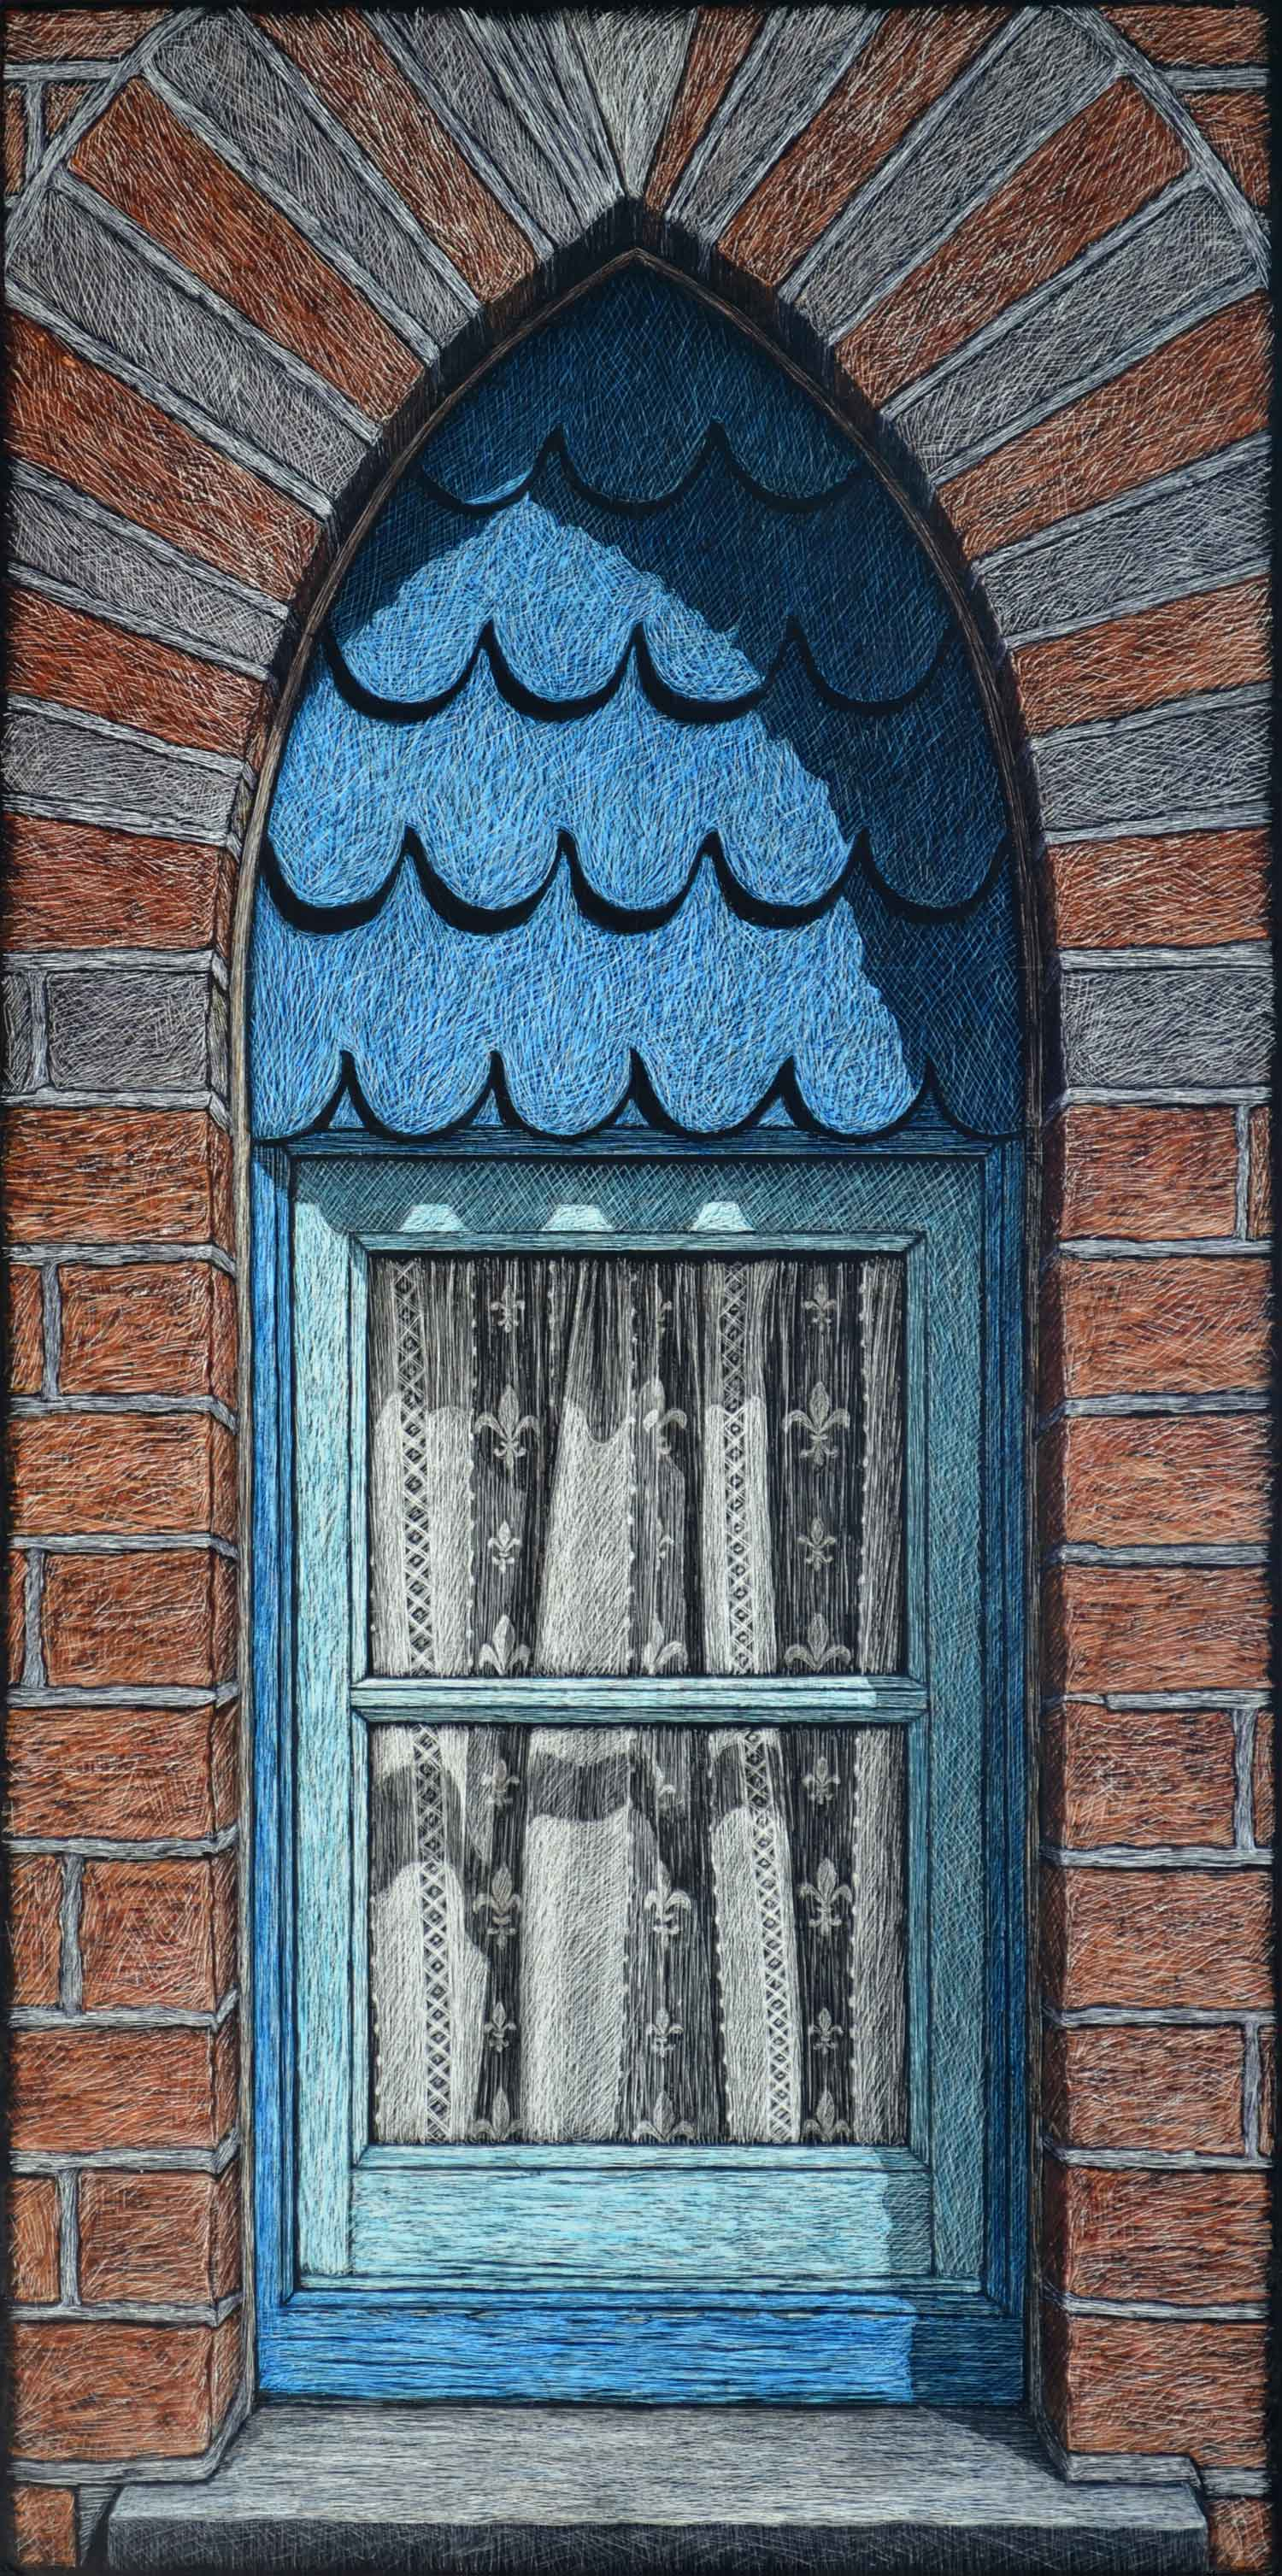 THE ALMS HOUSE WINDOW  61.5 X 30.5 CM, Edition of 50  PIGMENT ON COTTON RAG PAPER  $1000 also available 84 x 42 cm $1,650